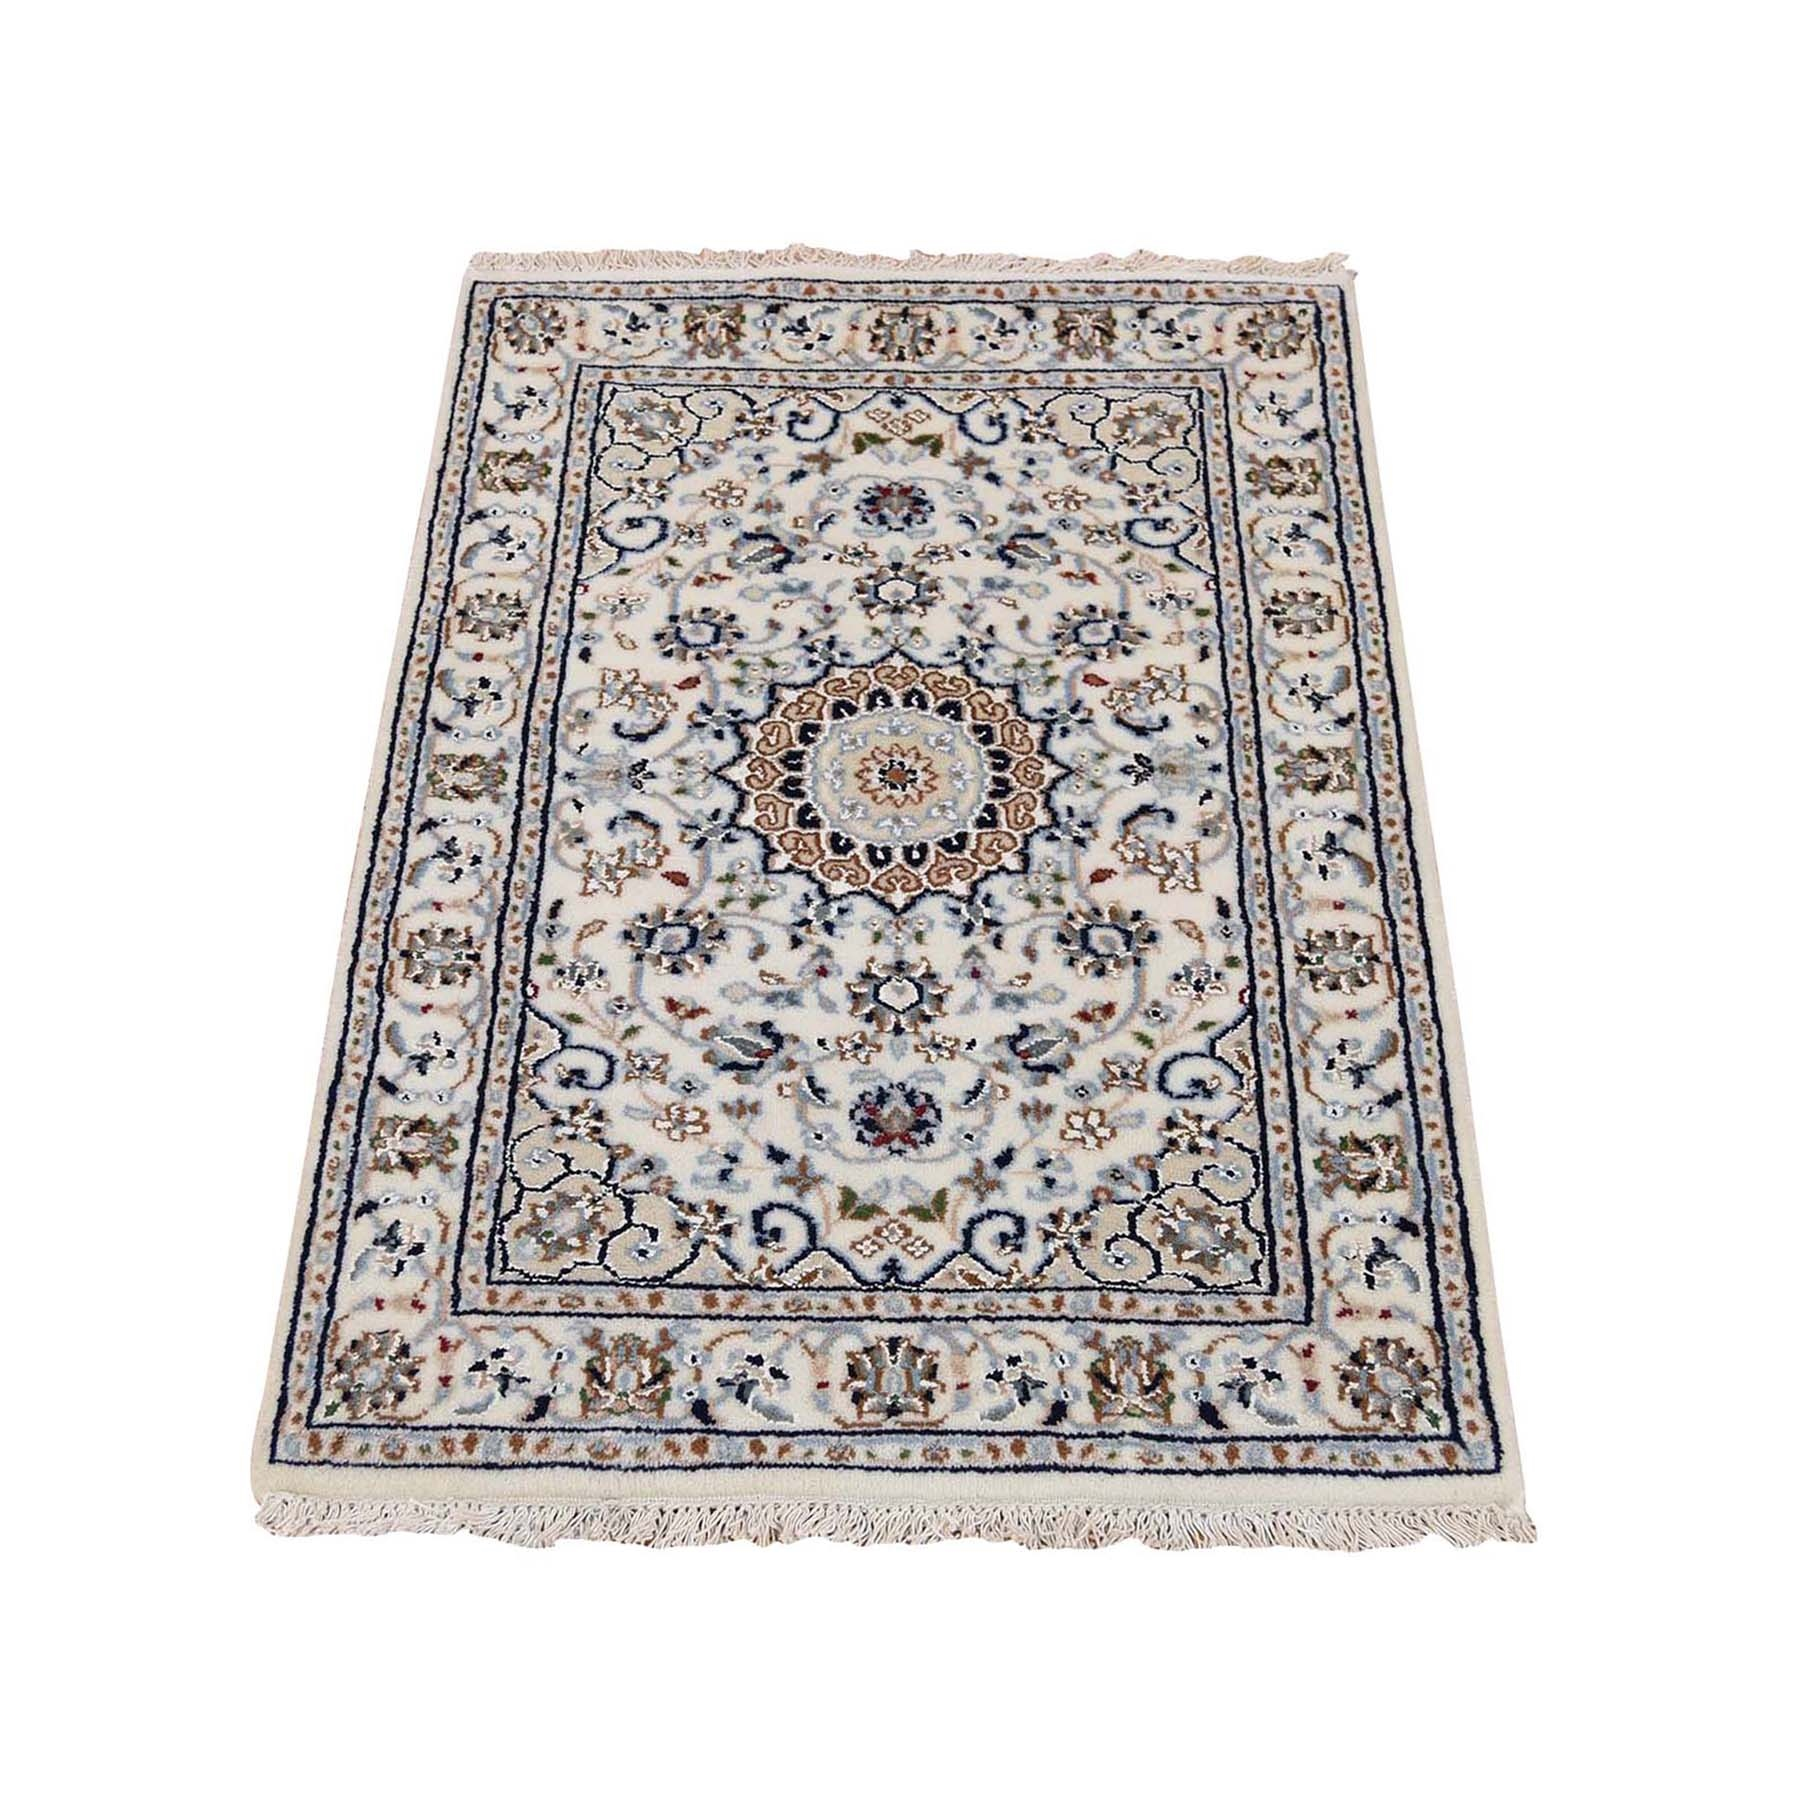 Pirniakan Collection Hand Knotted Ivory Rug No: 0195442